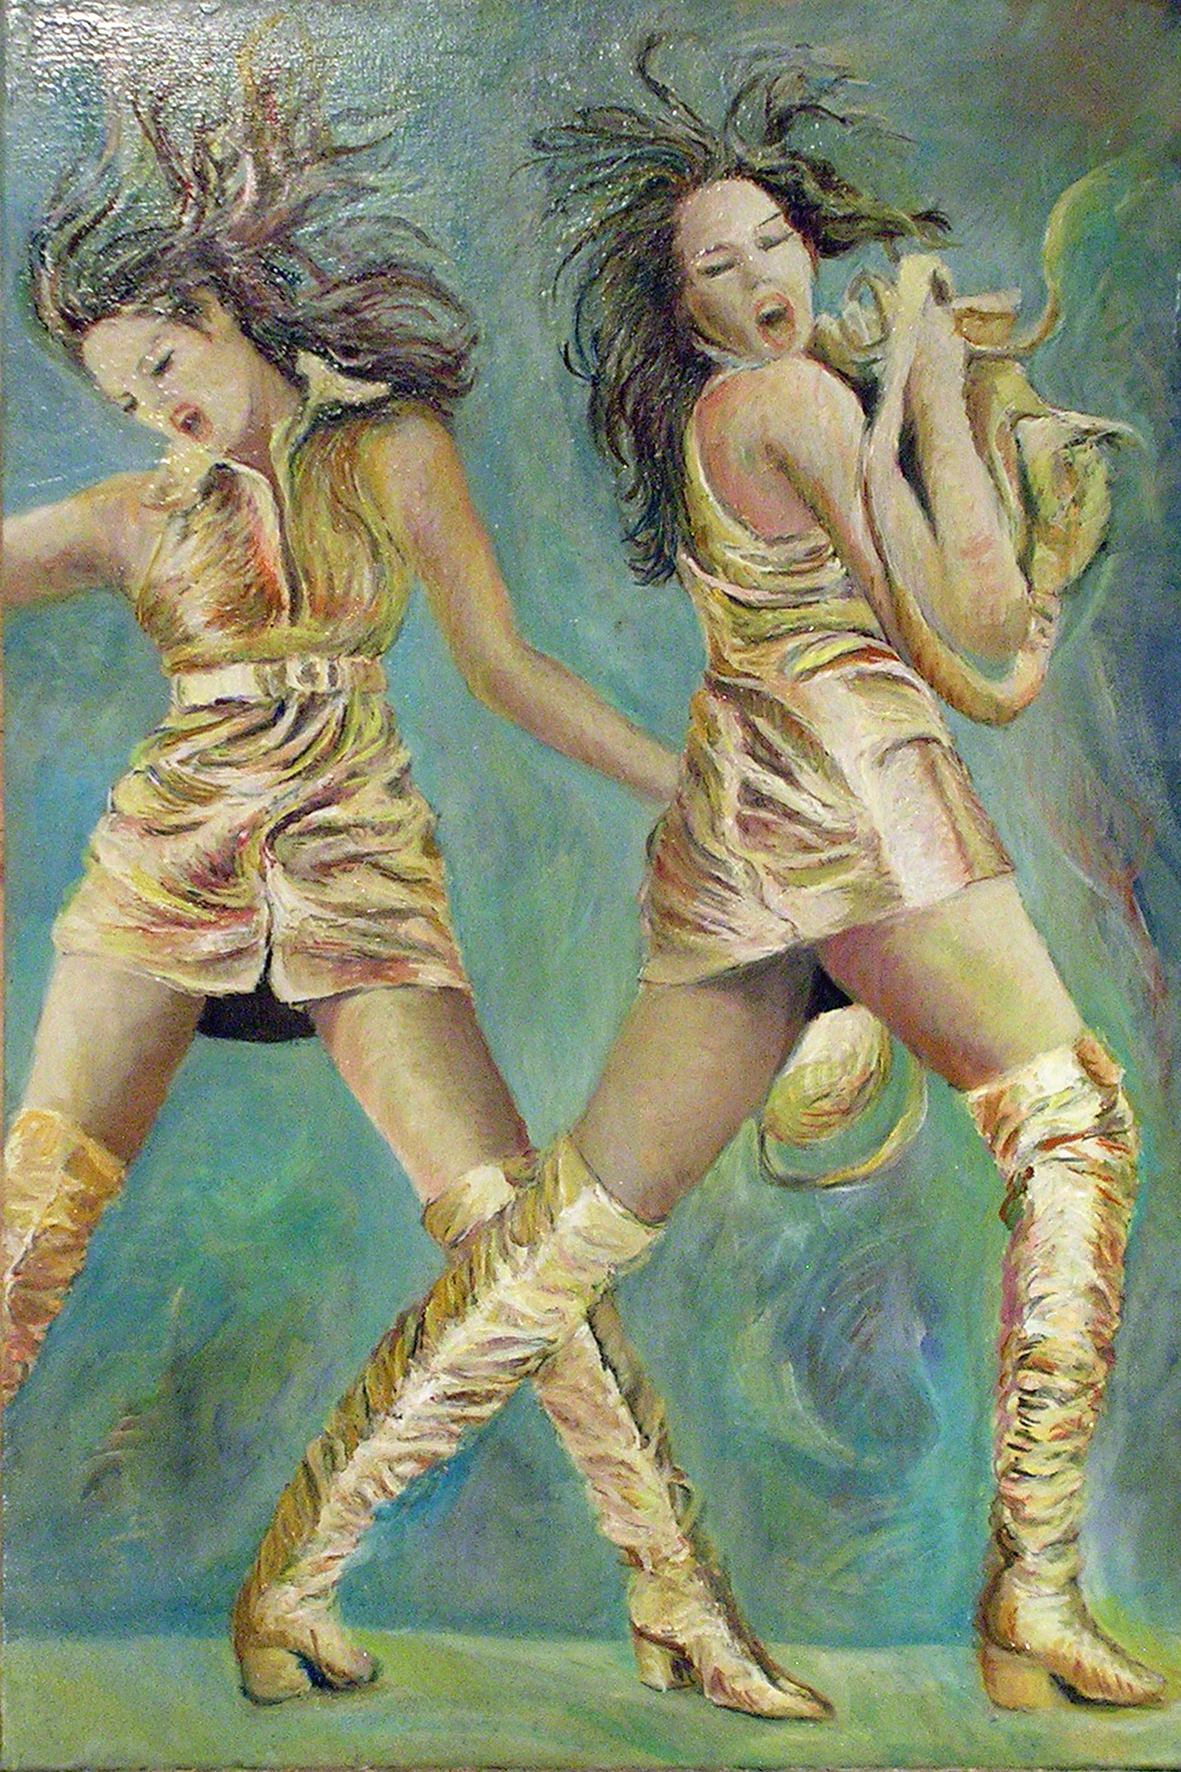 415-66 Cindy Crawford double... Huile sur acrylique, Oil on acrylic,20x30 po, 50x70 cm 2014-12-26